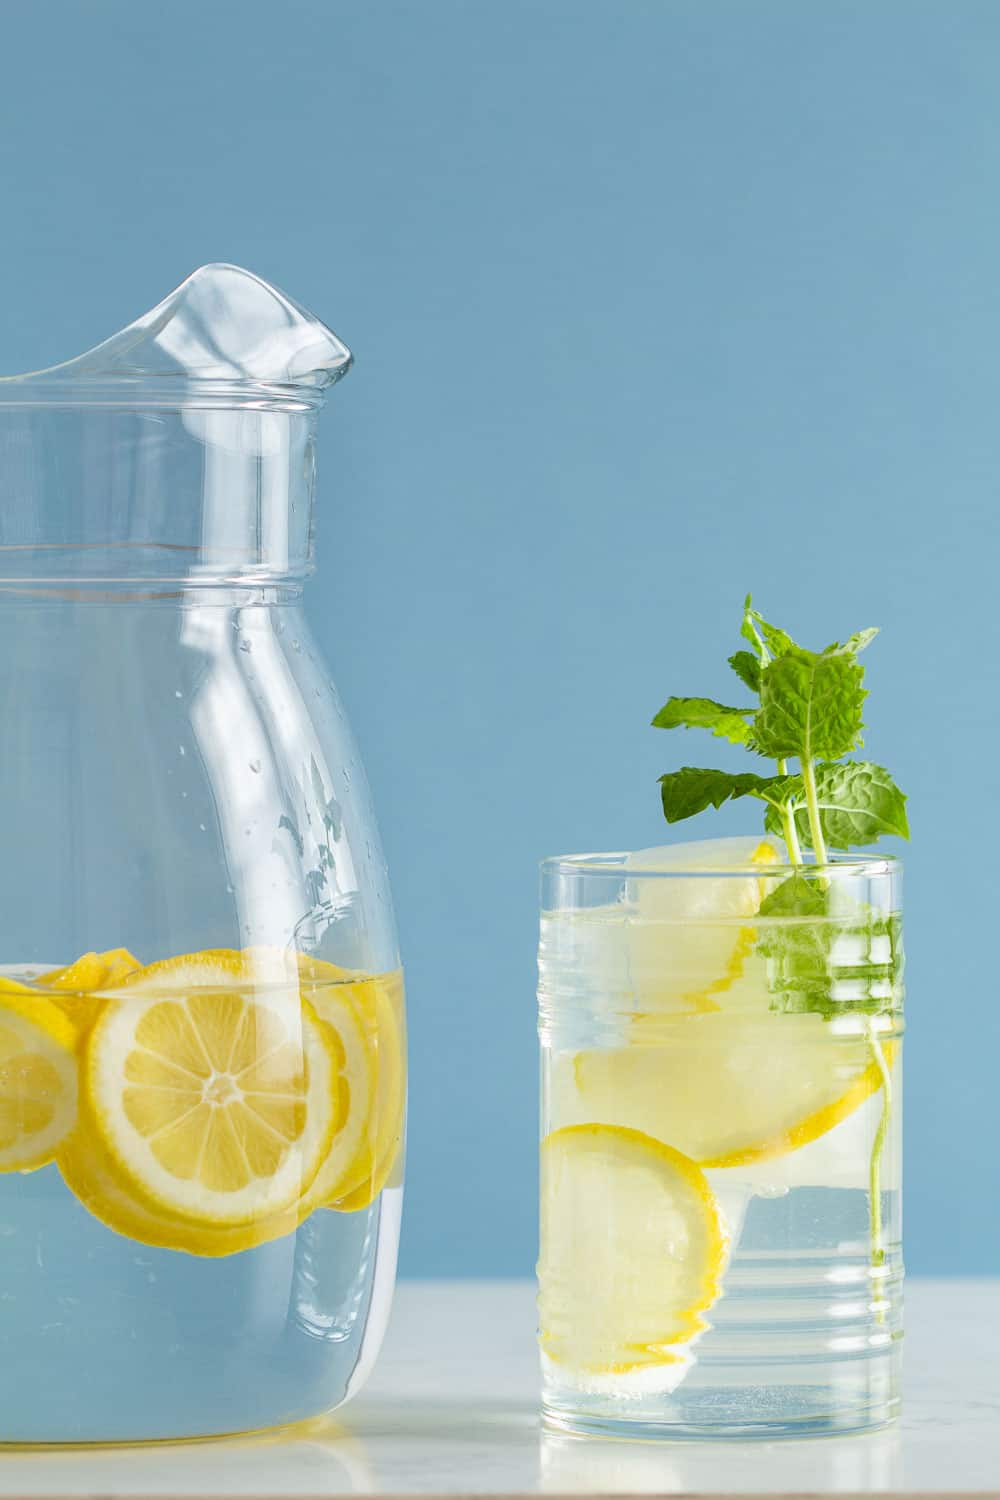 Infuse Water Lemon : infuse, water, lemon, Lemon, Infused, Water, Green, Healthy, Cooking